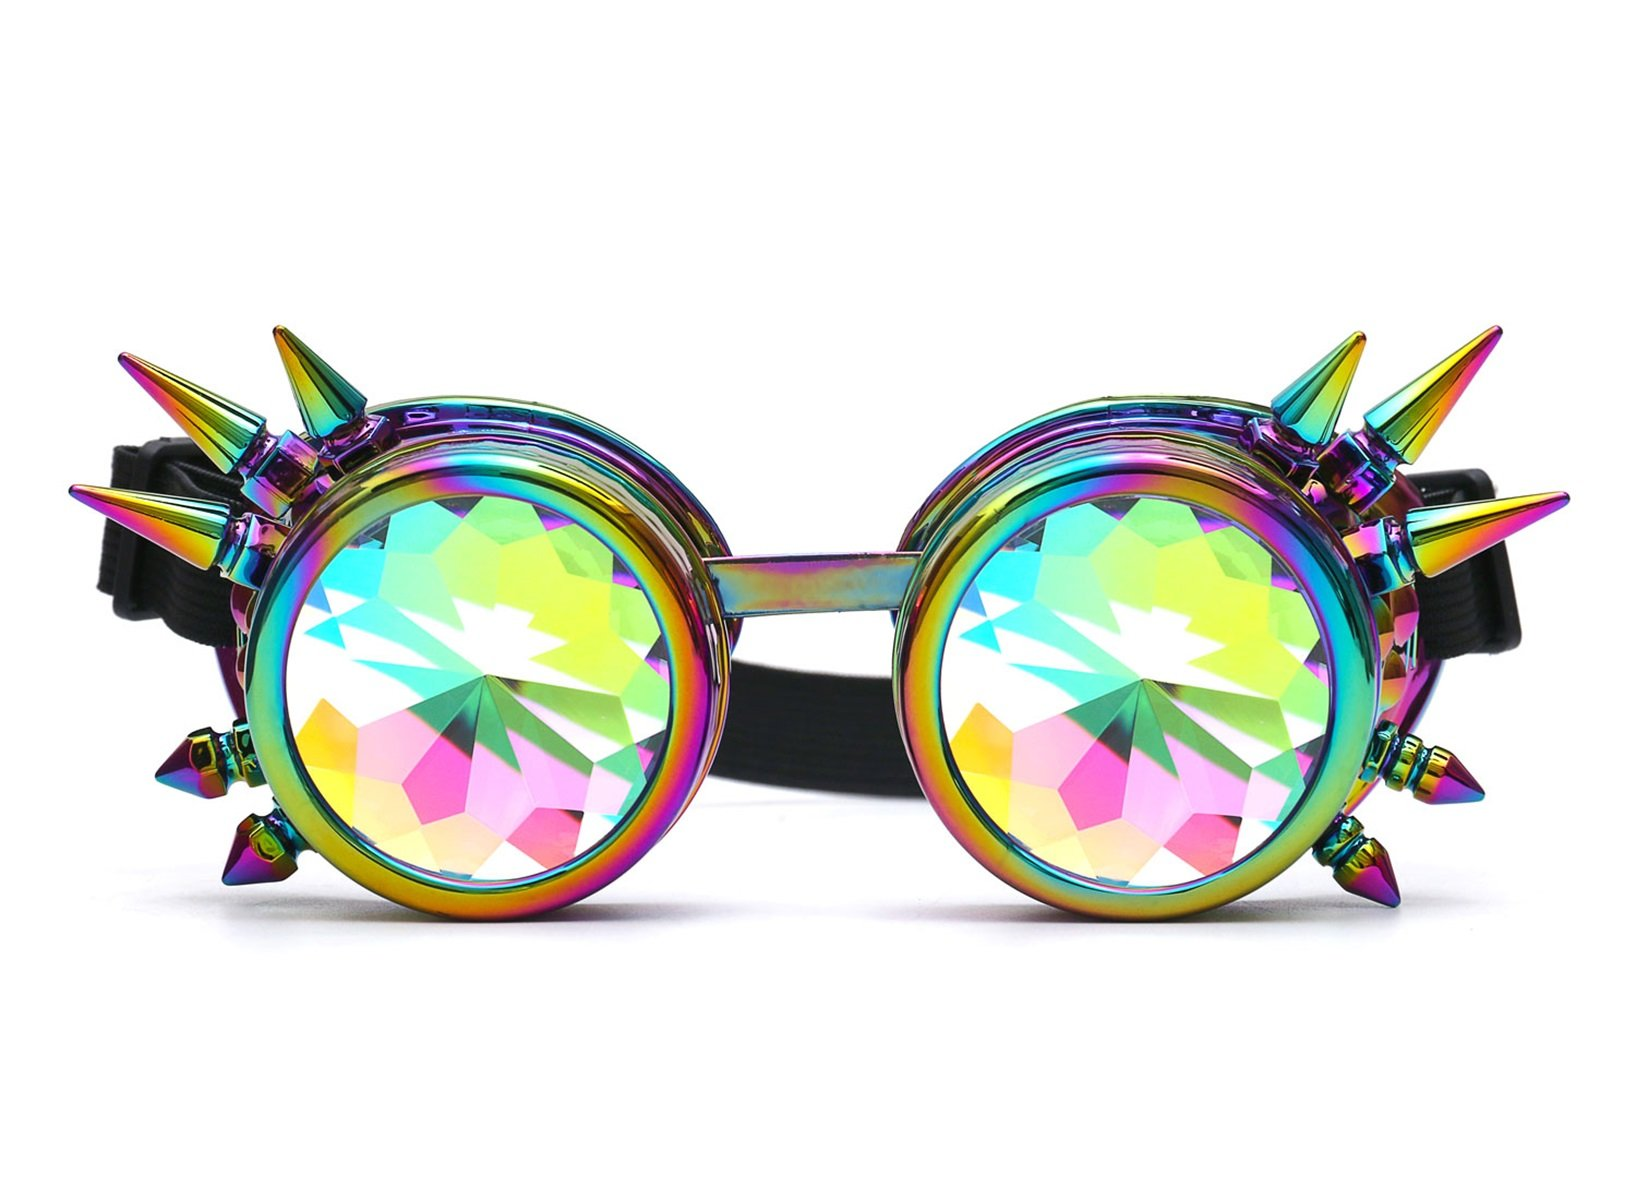 Lelinta Rainbow Crystal Lenses Steampunk Glasses Chrome Finish Gotchic Welder Goggles